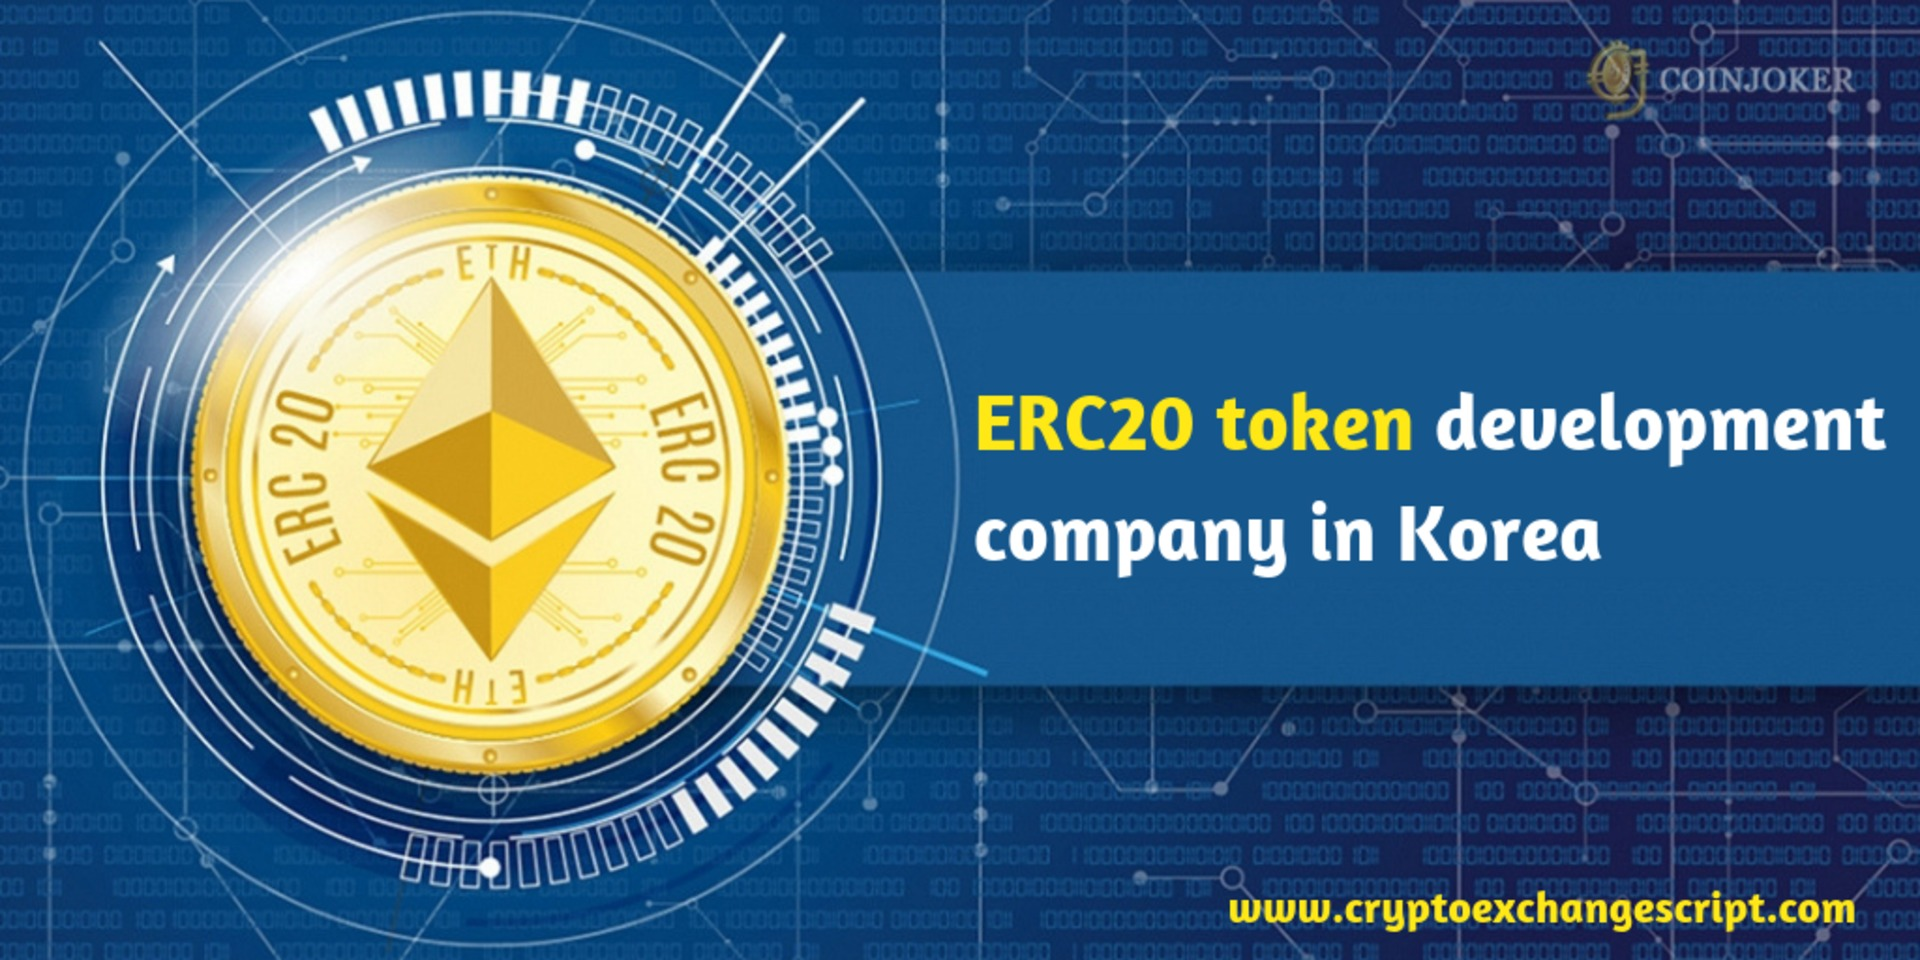 Which is the leading ERC20 token development company in Korea? image